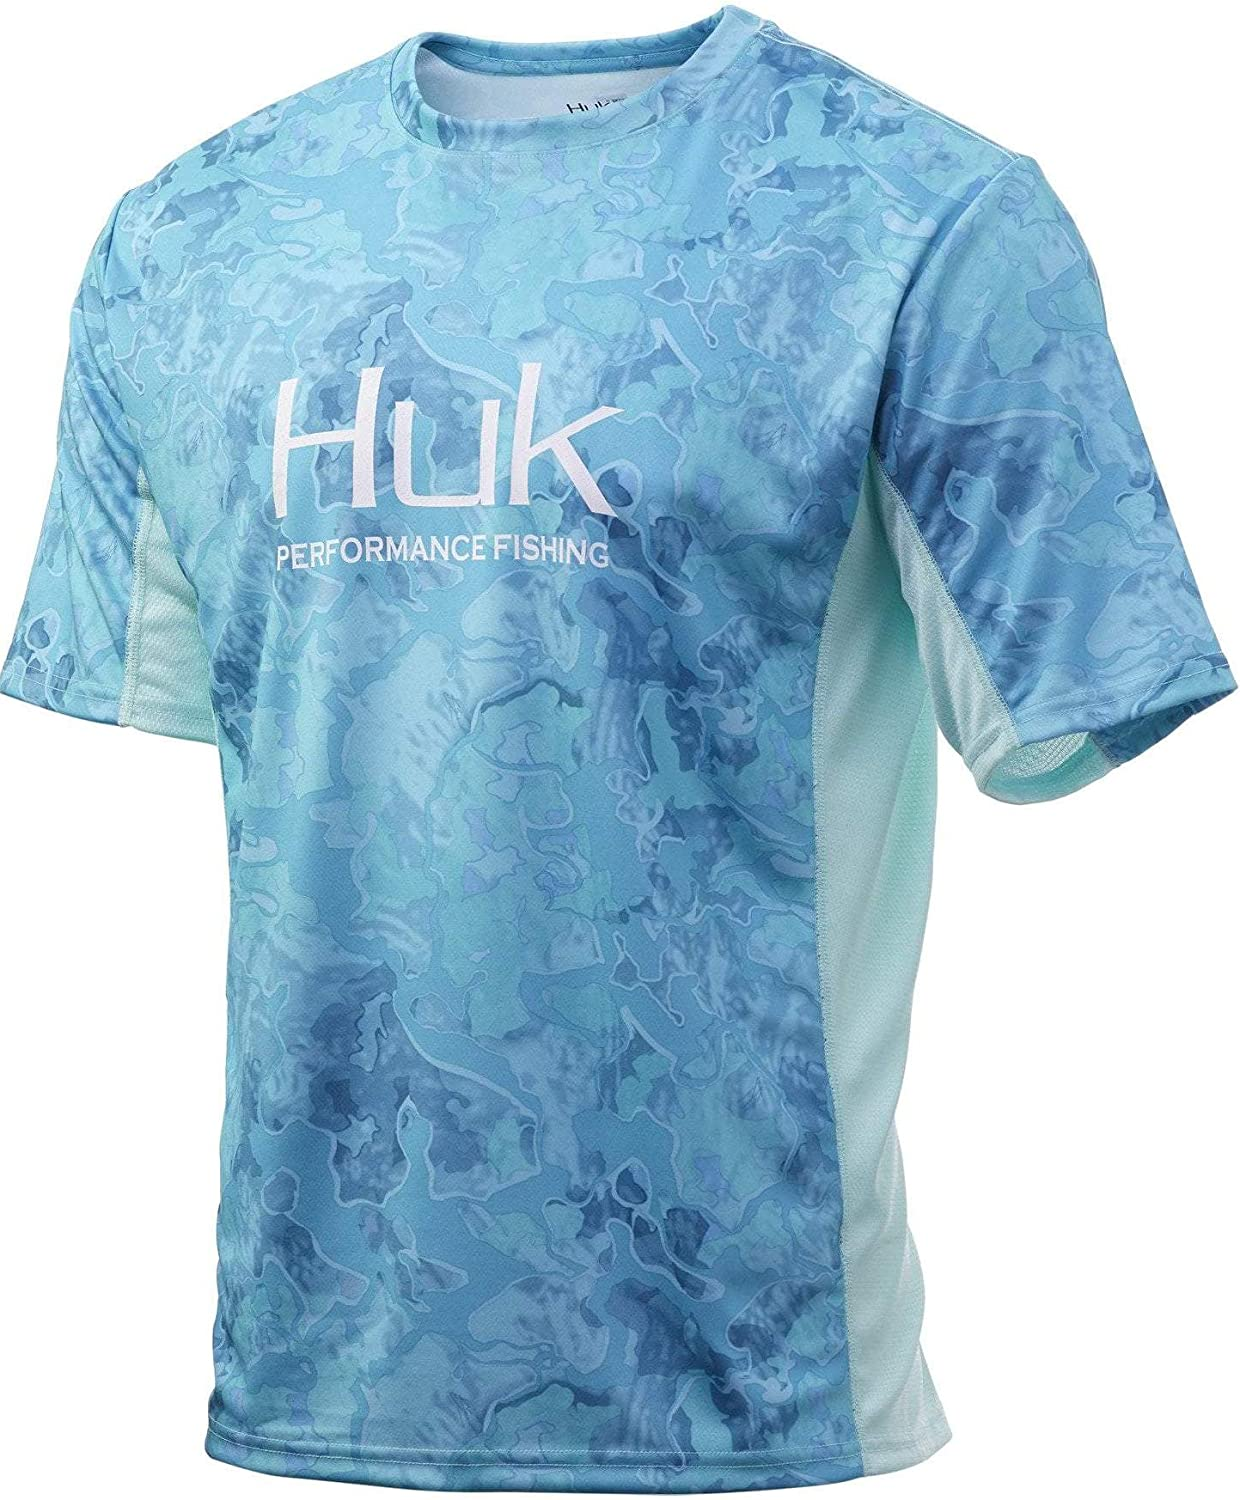 HUK Men's Icon X Camo Performance Fishing Clearance SALE! Limited time! Shirt Short-Sleeve Super beauty product restock quality top